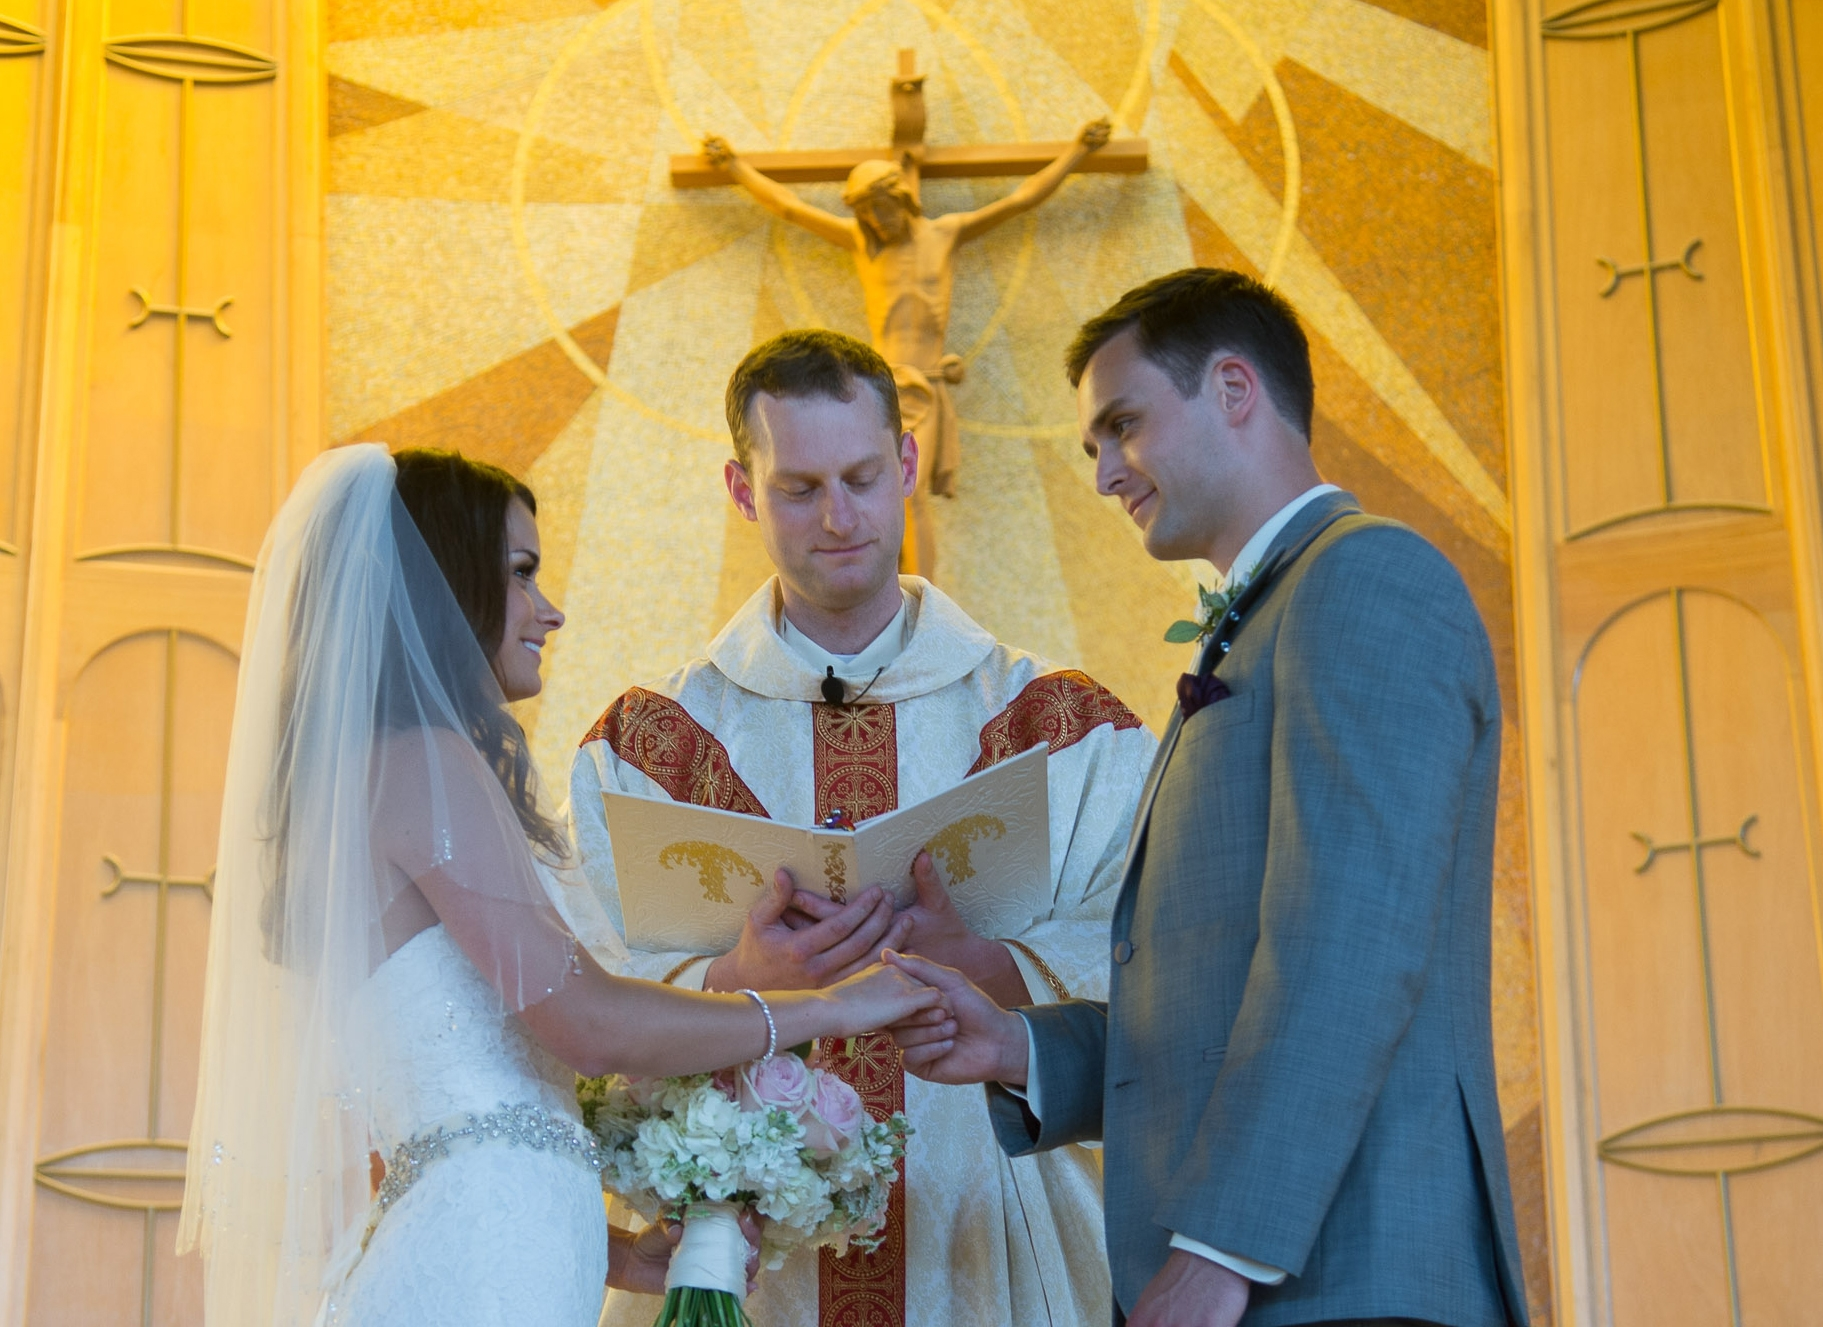 Bryce and Johnna Comfort's wedding, July 26th, 2013 at St. Charles Borromeo in Tacoma. marriage, crucifix, priest.